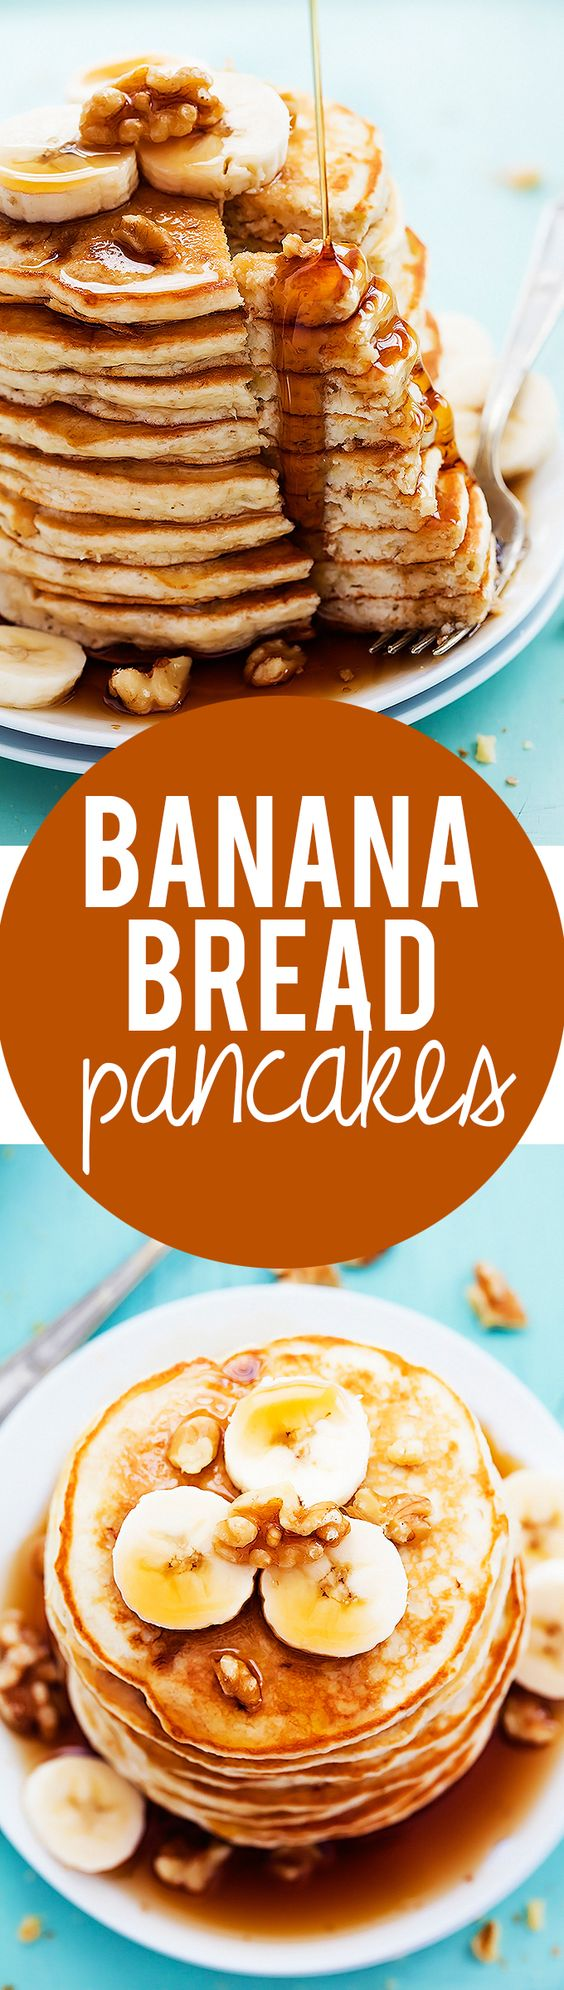 Banana Bread Pancakes Recipe via Creme de la Crumb - The ultimate breakfast twist on classic banana bread!